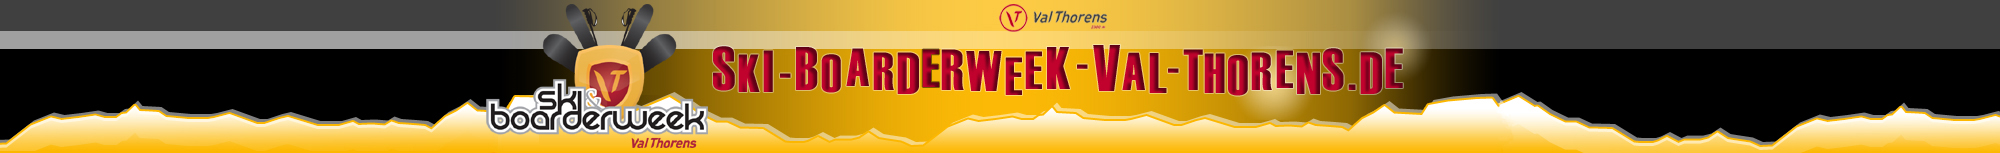 ski & boarderweek à val thorens - accueil